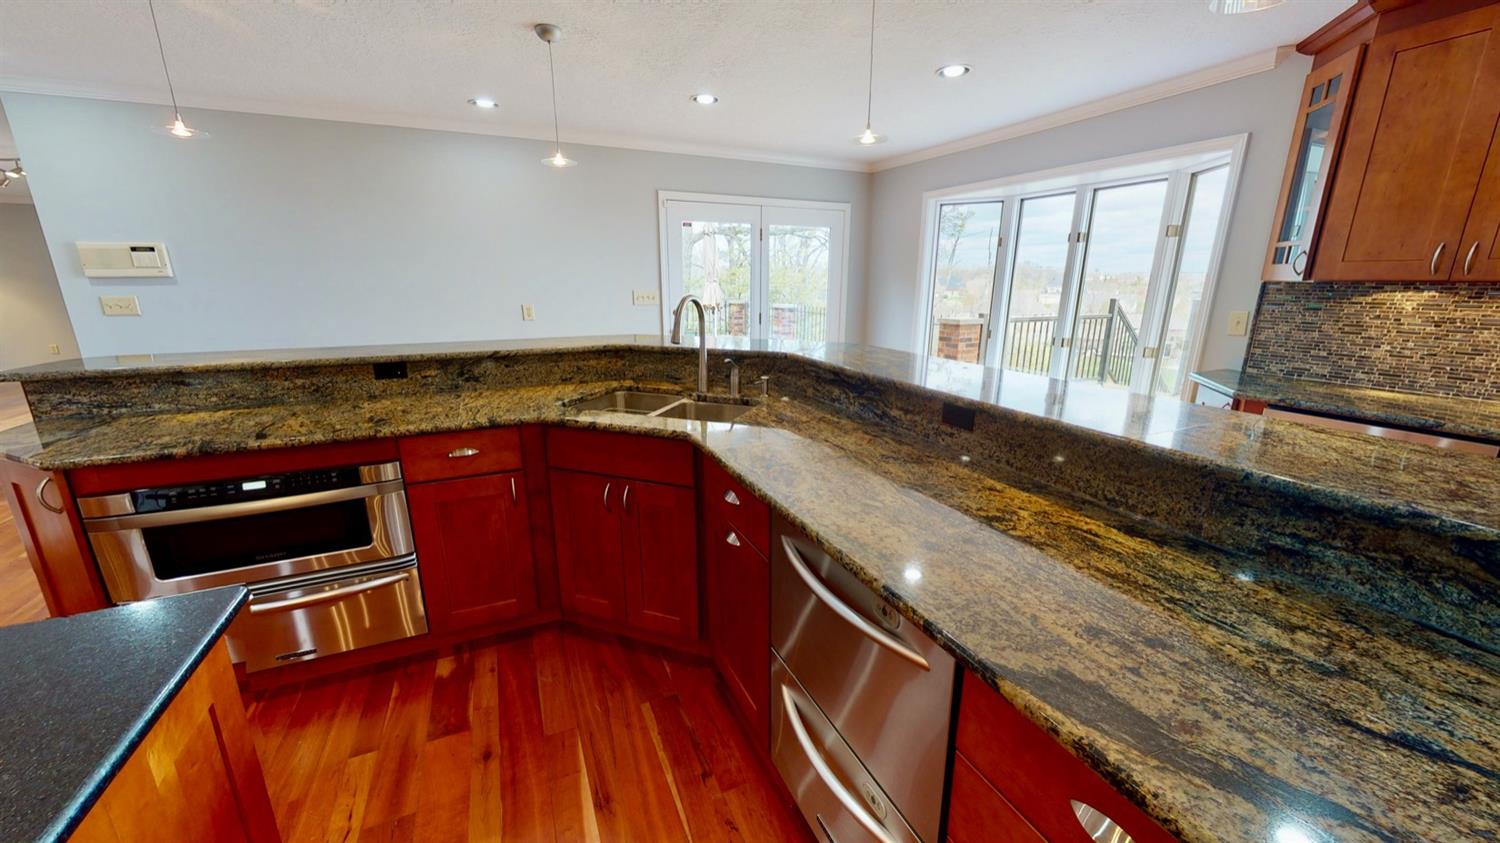 Gourmet kitchen area including microwave drawer oven and double drawer dishwasher.